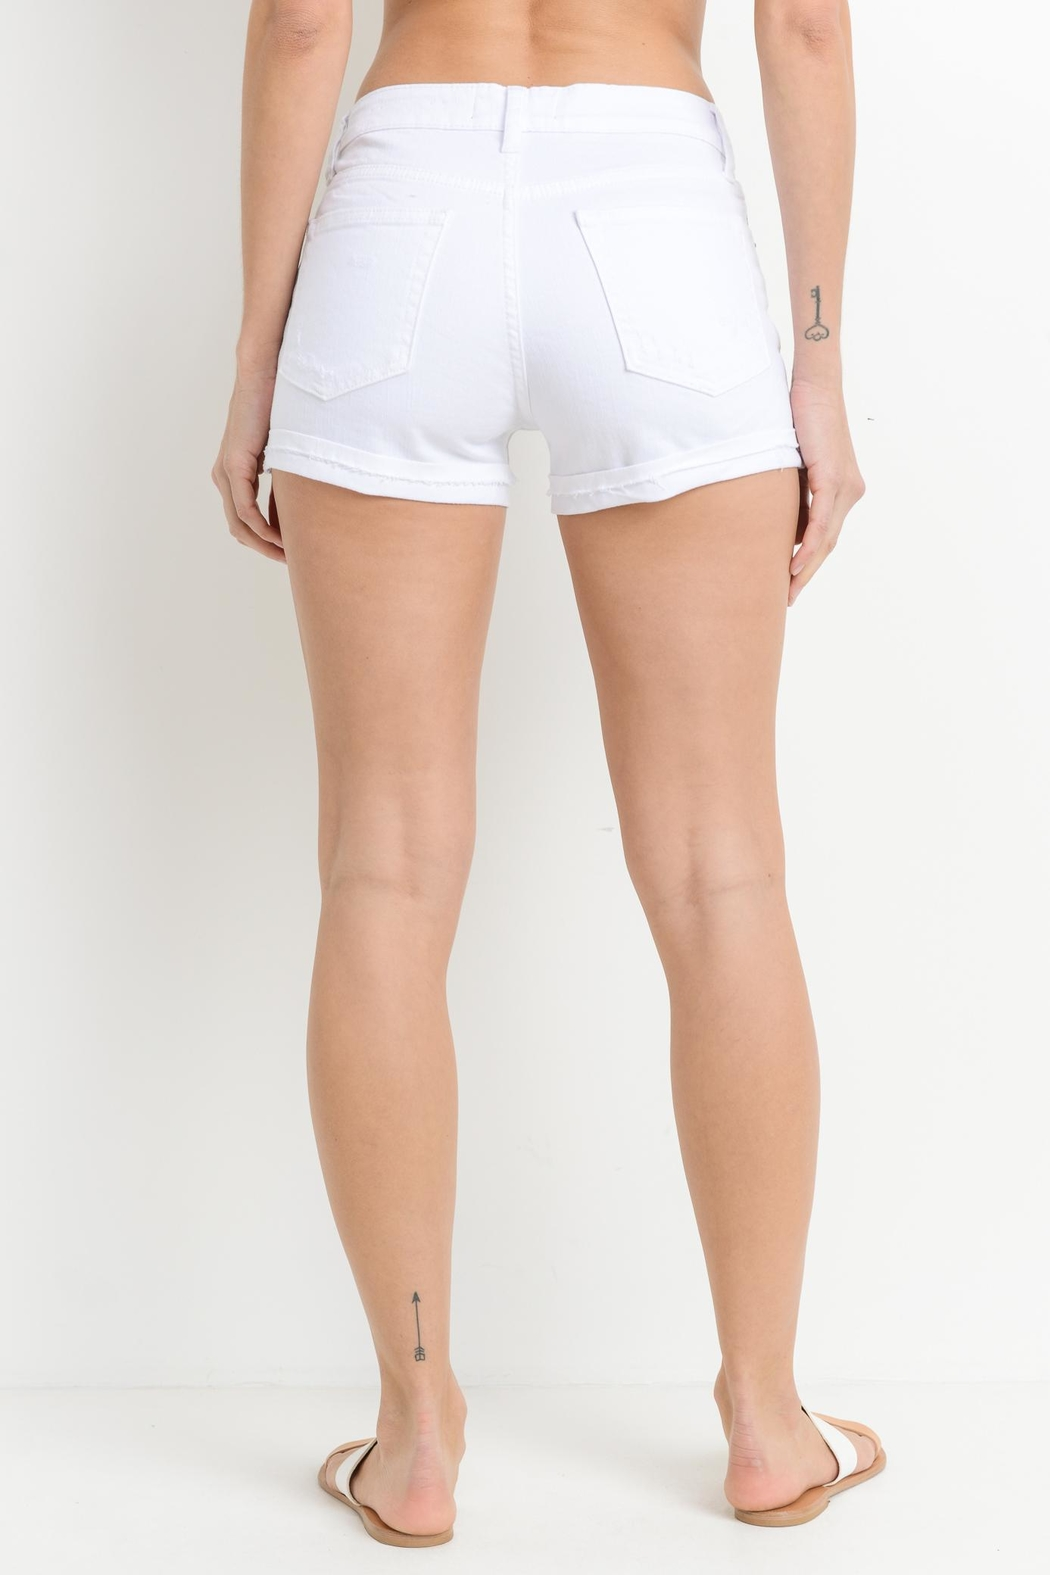 Just USA Cuffed White Short - Side Cropped Image